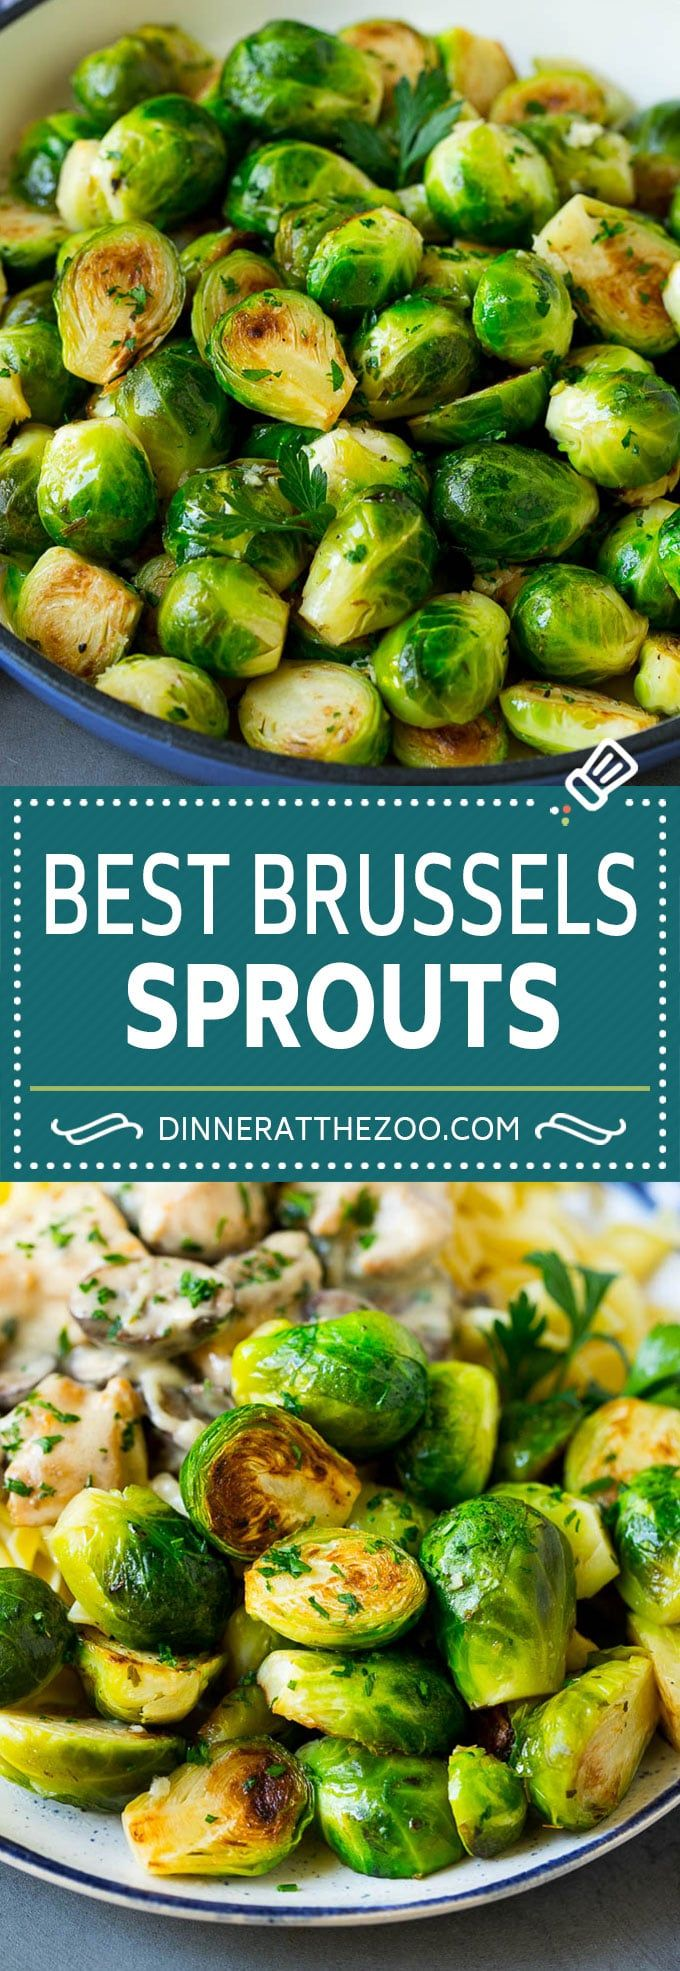 Sauteed Brussels Sprouts Sauteed Brussels Sprouts Recipe | Brussels Sprouts Side Dish